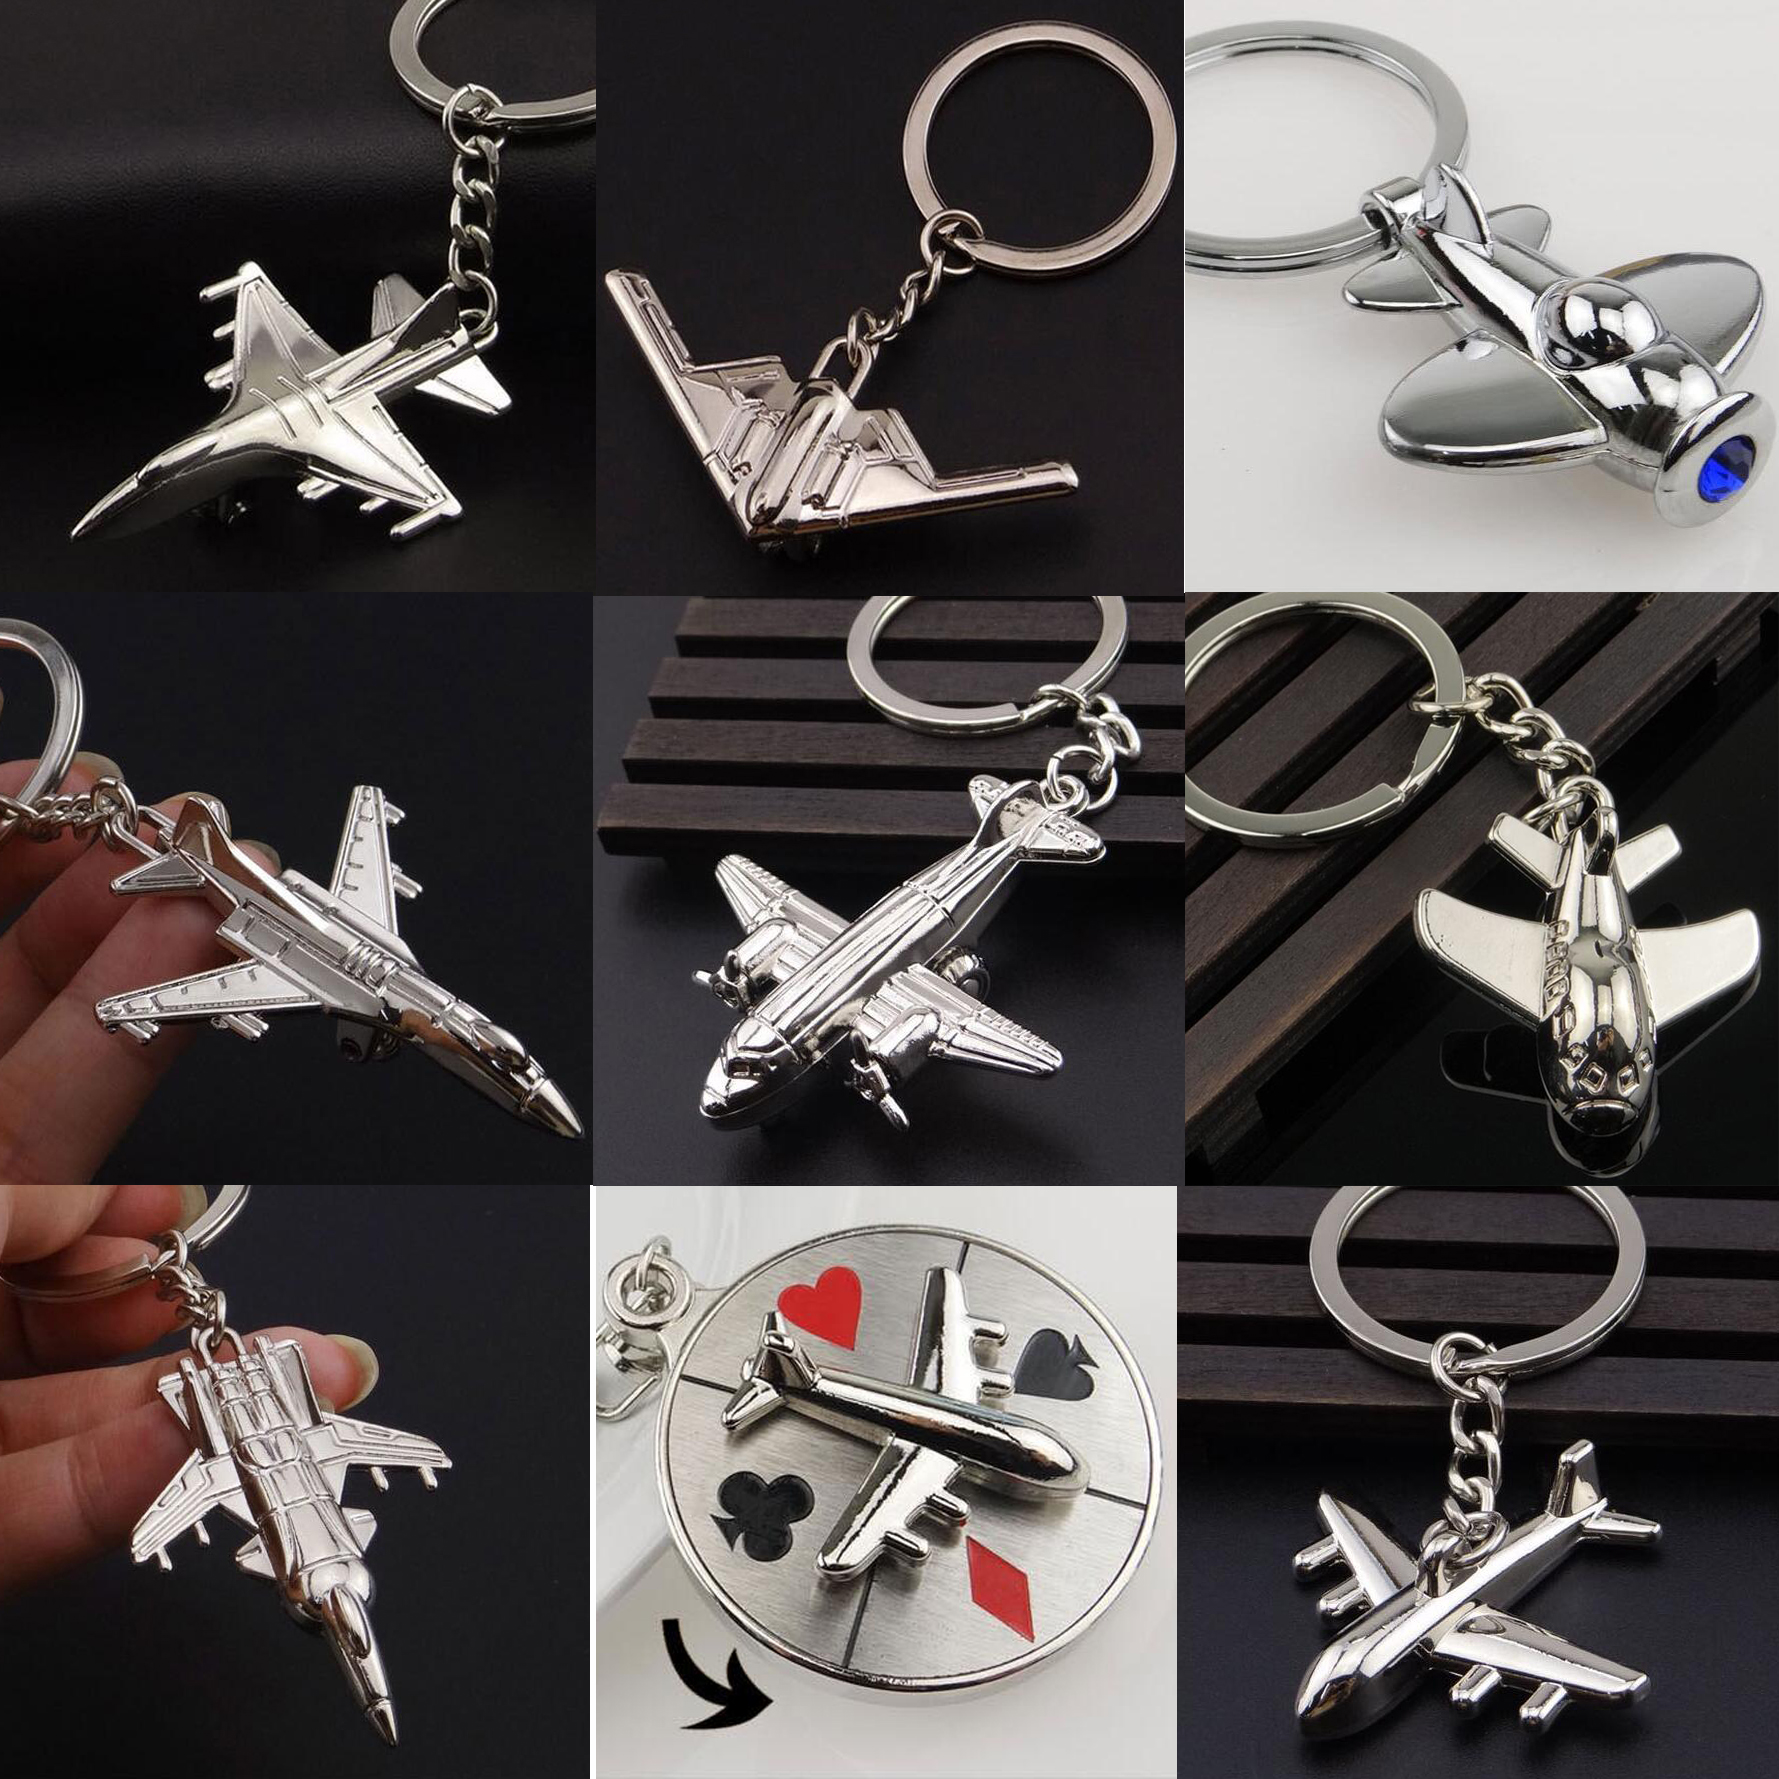 Keychains For Men Car Bag KeyRing Air Plane Model Fighter Toy Air Plane Model Fighter Aircrafe Travel Fashion Gift